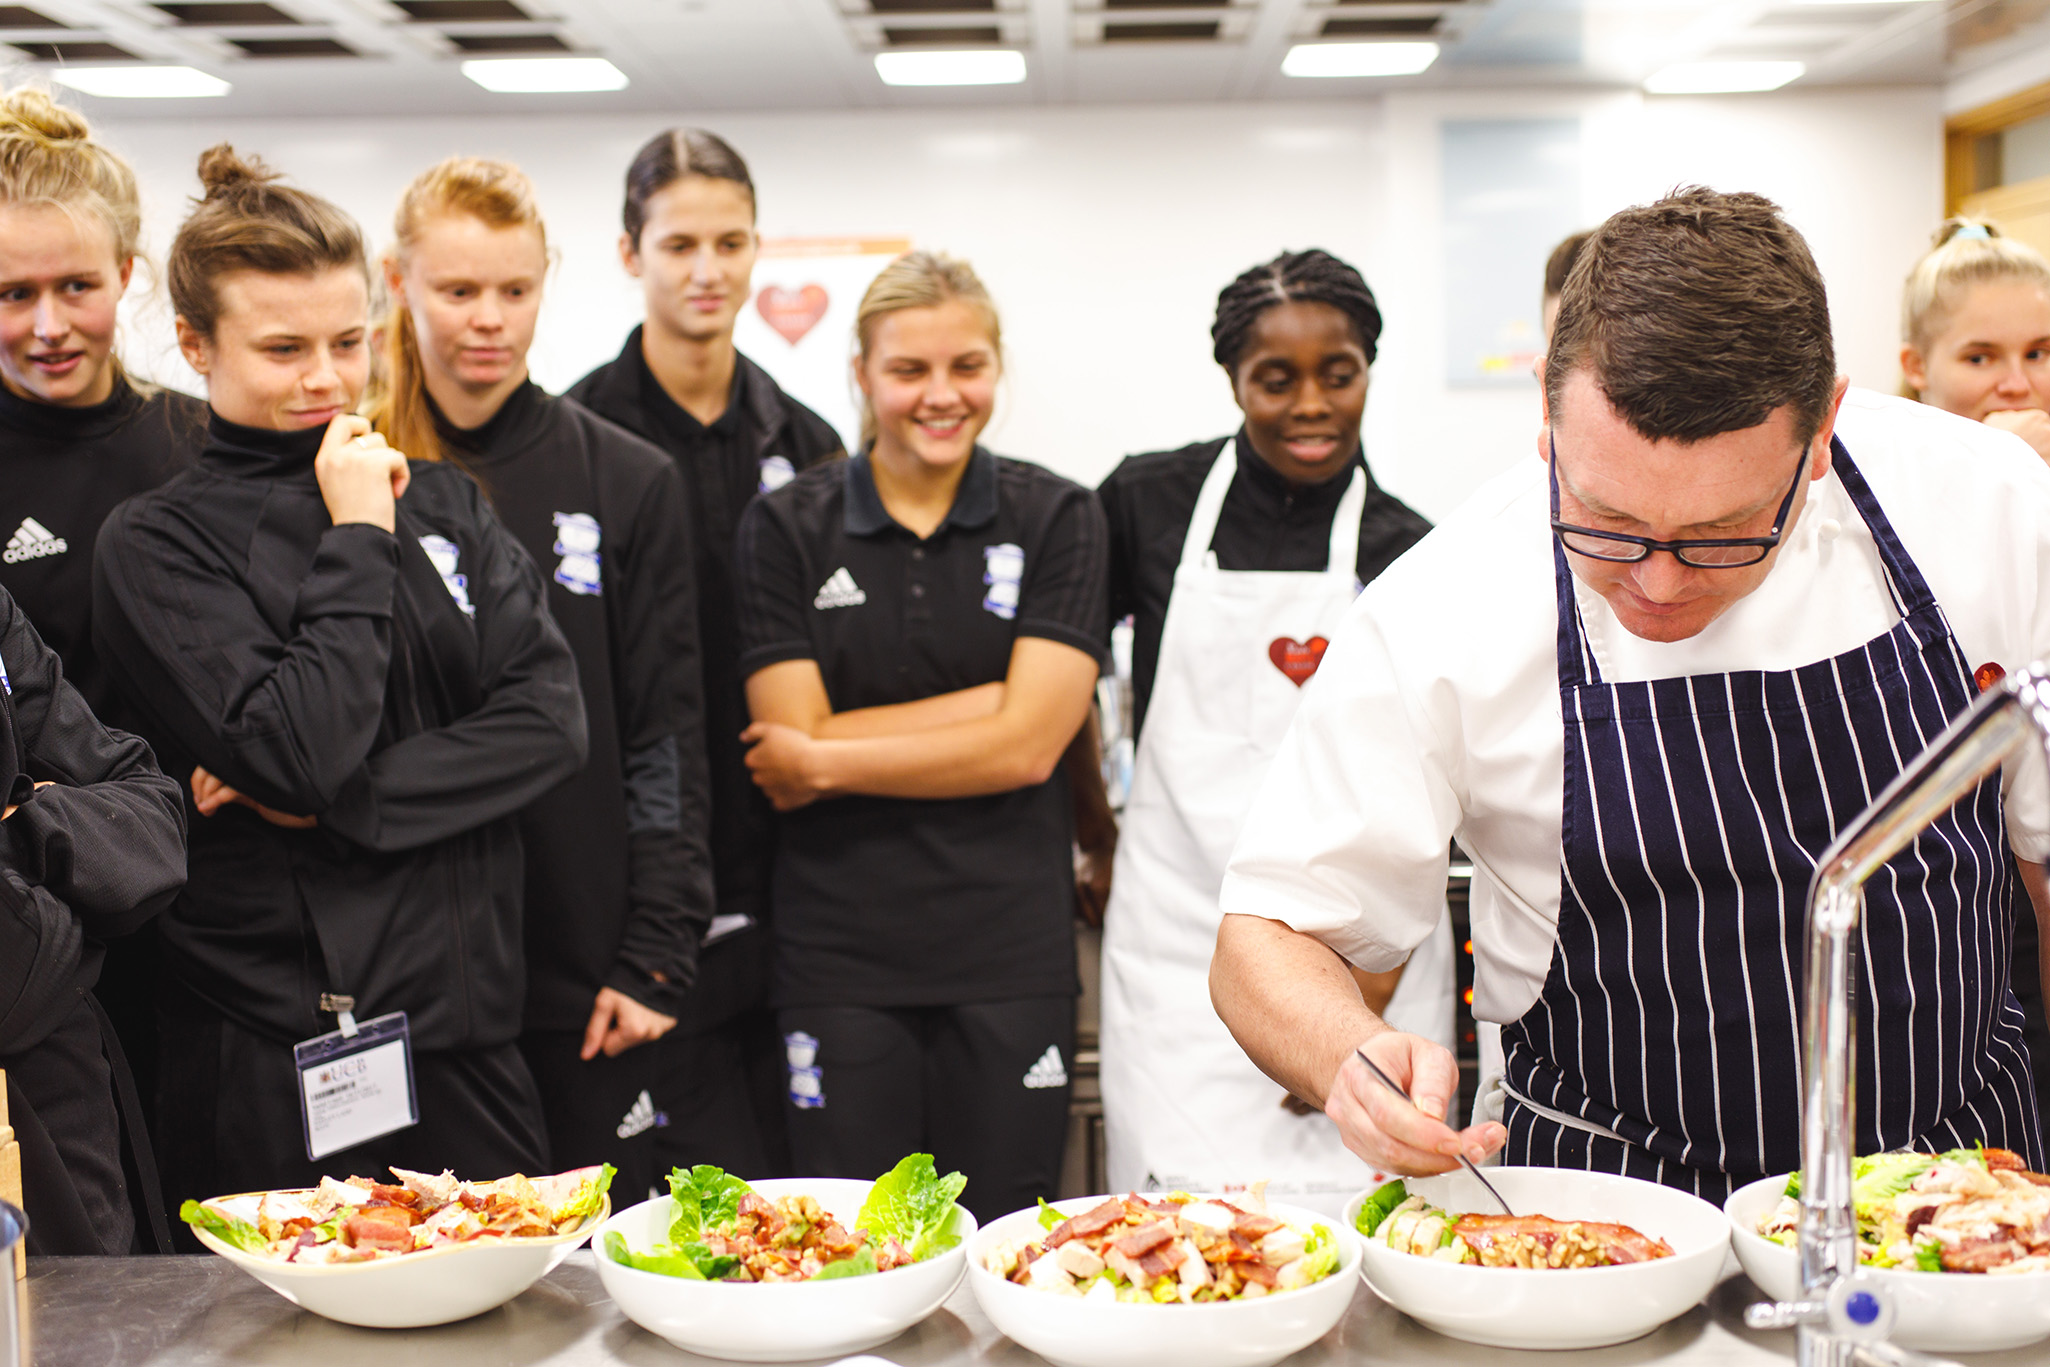 Chef Colcombe impressed with Birmingham City Ladies light lunches